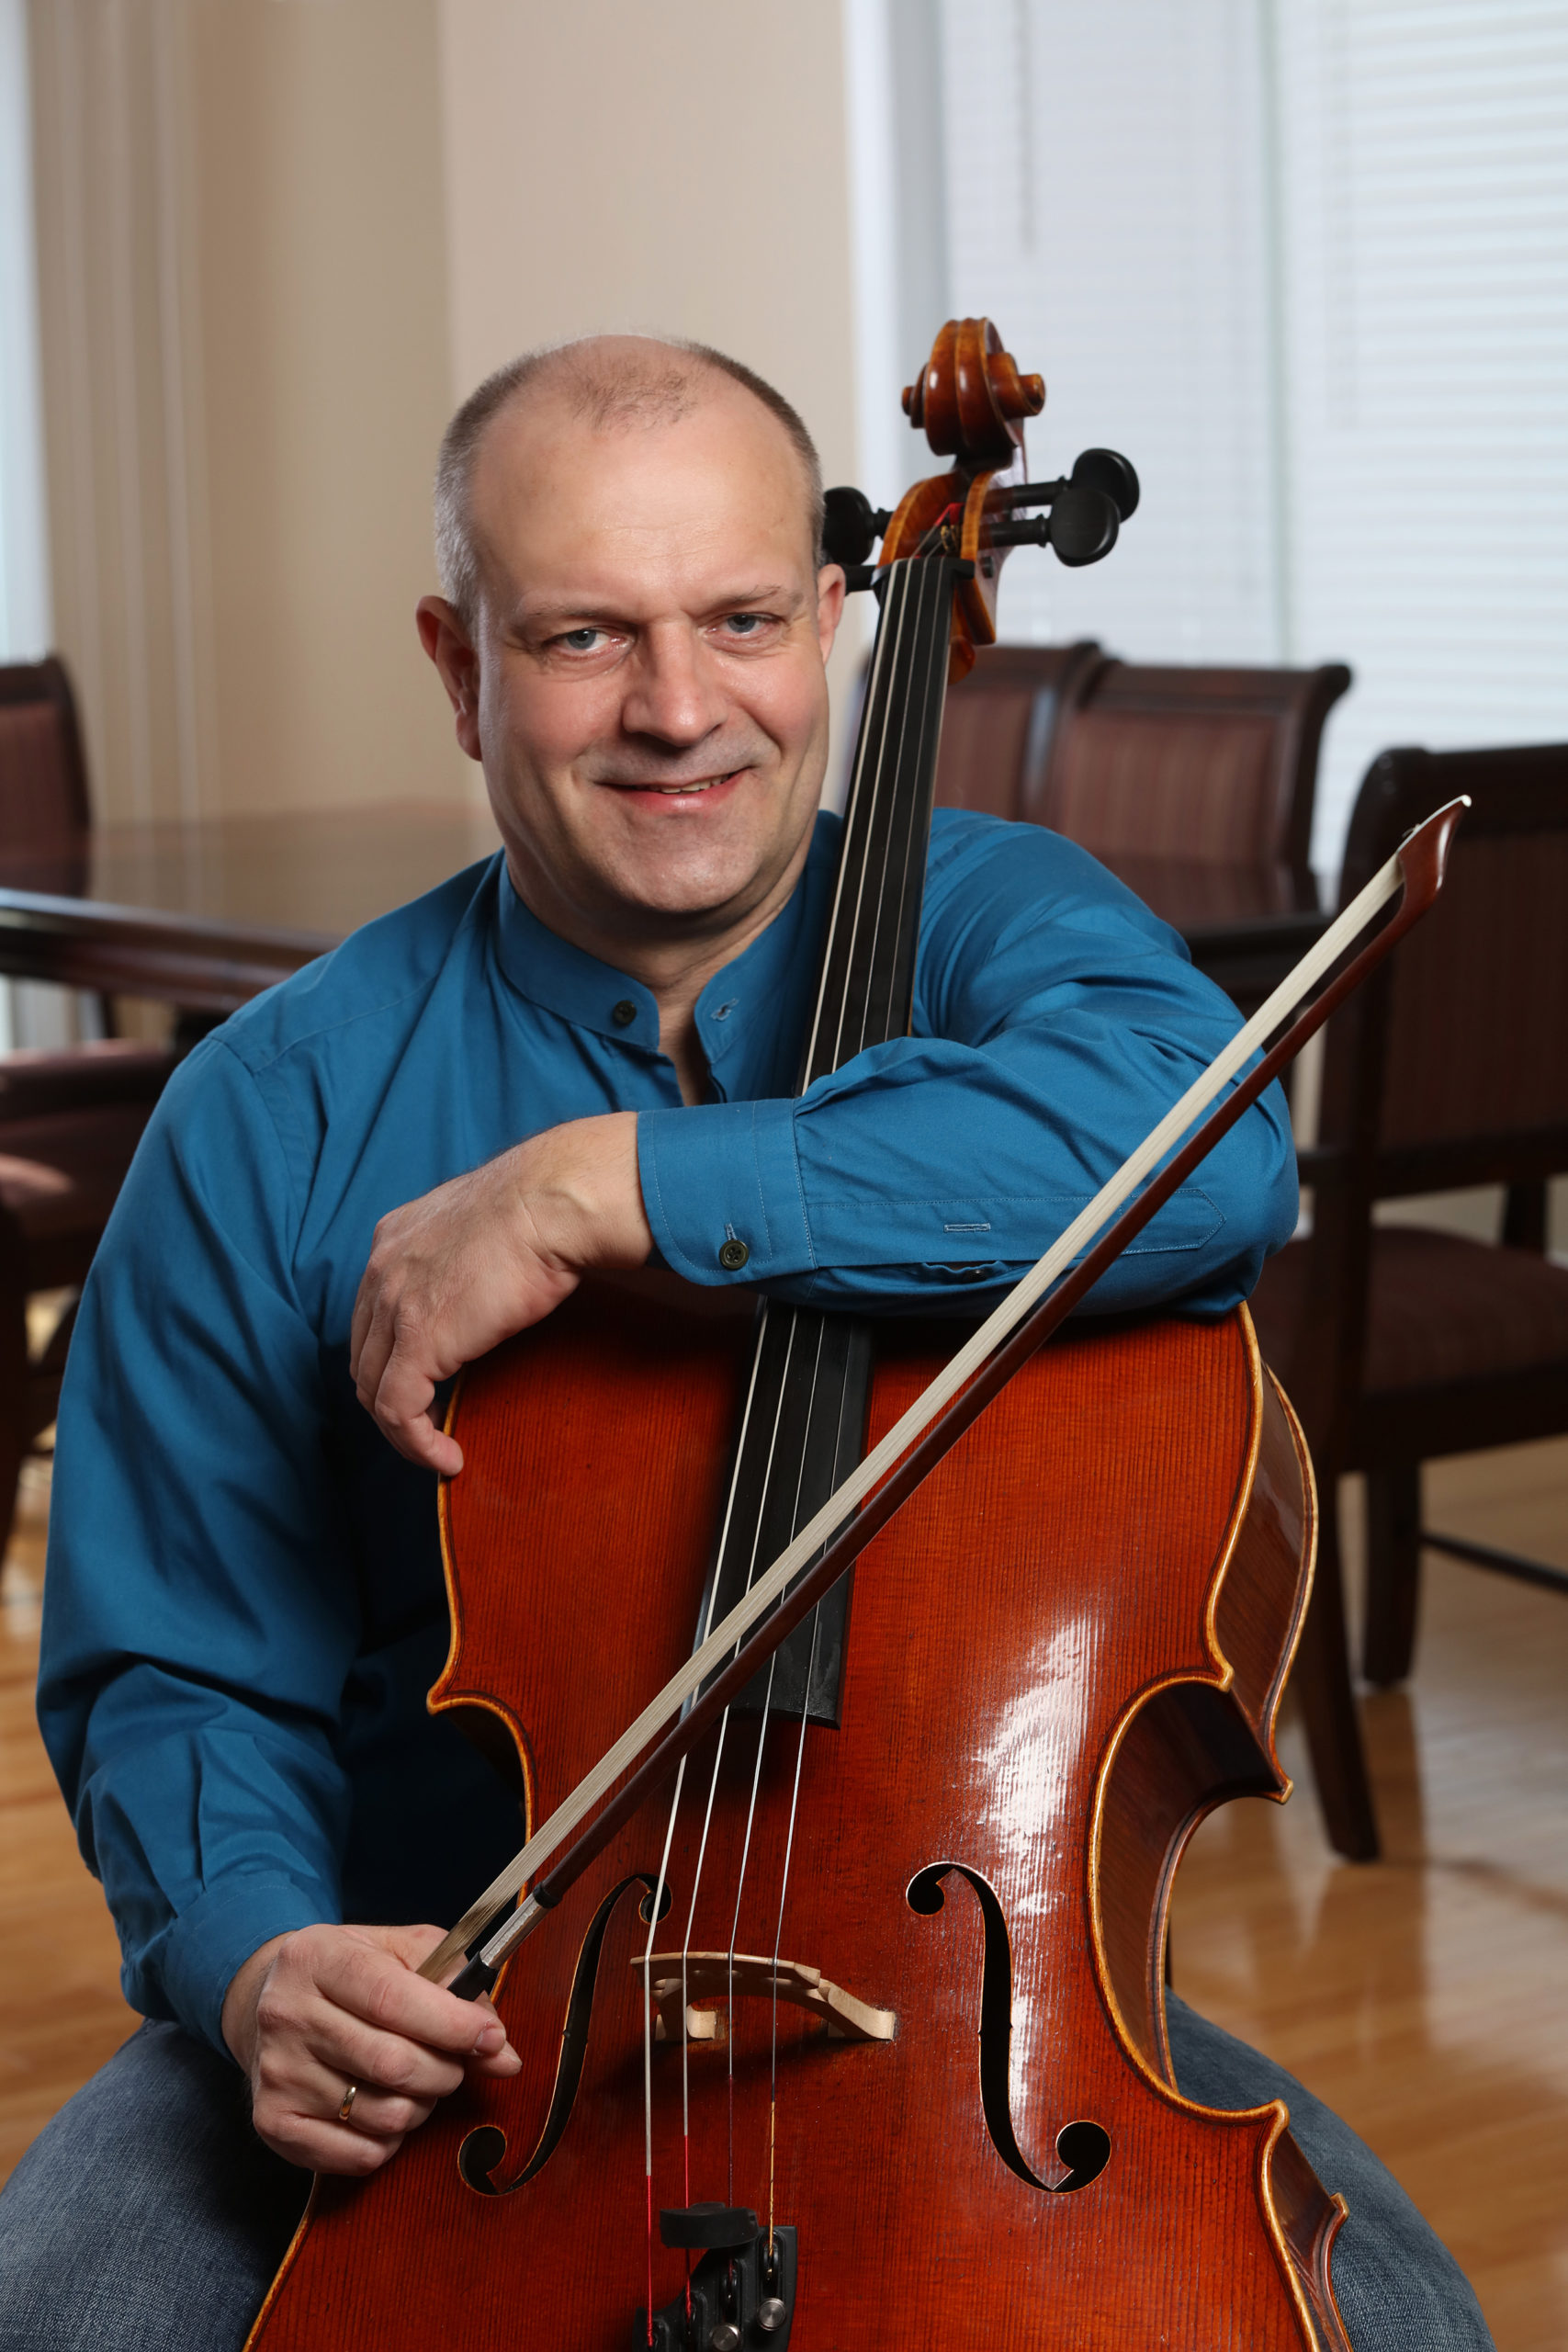 Wolf with his Cello